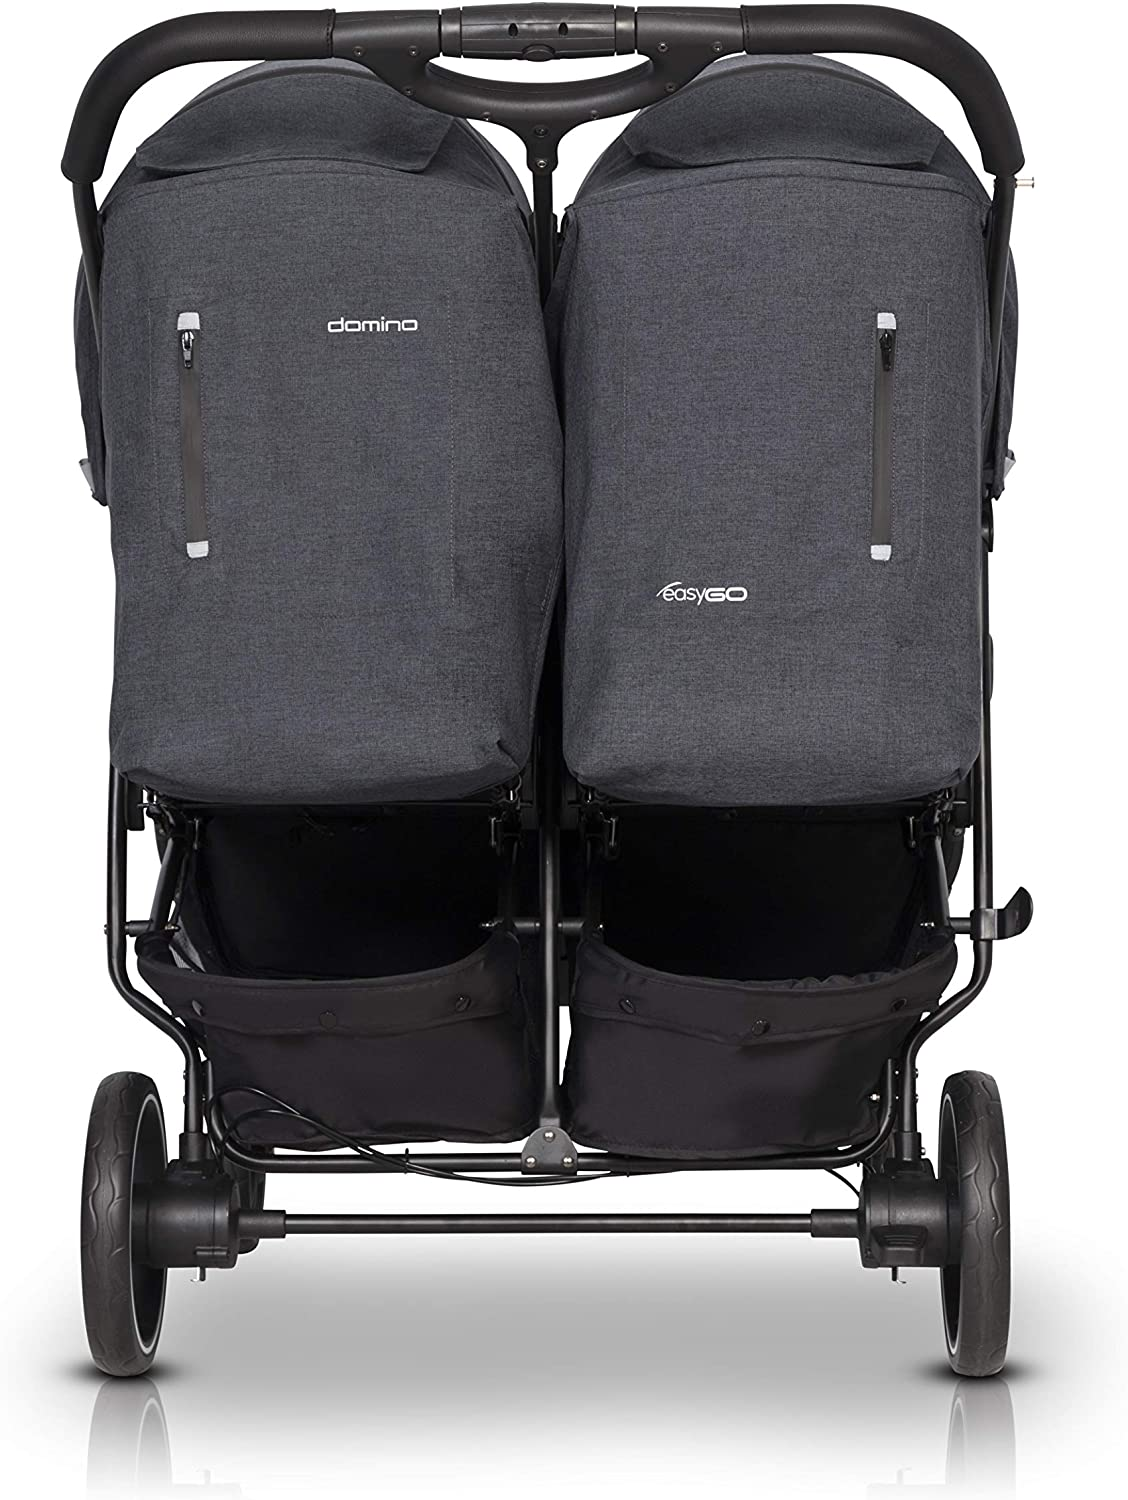 5-Position backrest Adjustment Raincover Swivel Wheels /& Roomy Shopping Basket Domino Double Buggy /& Double Pushchairs- Premium Fashionable Travel System for Twin Seats 0+ from Birth Sunshade